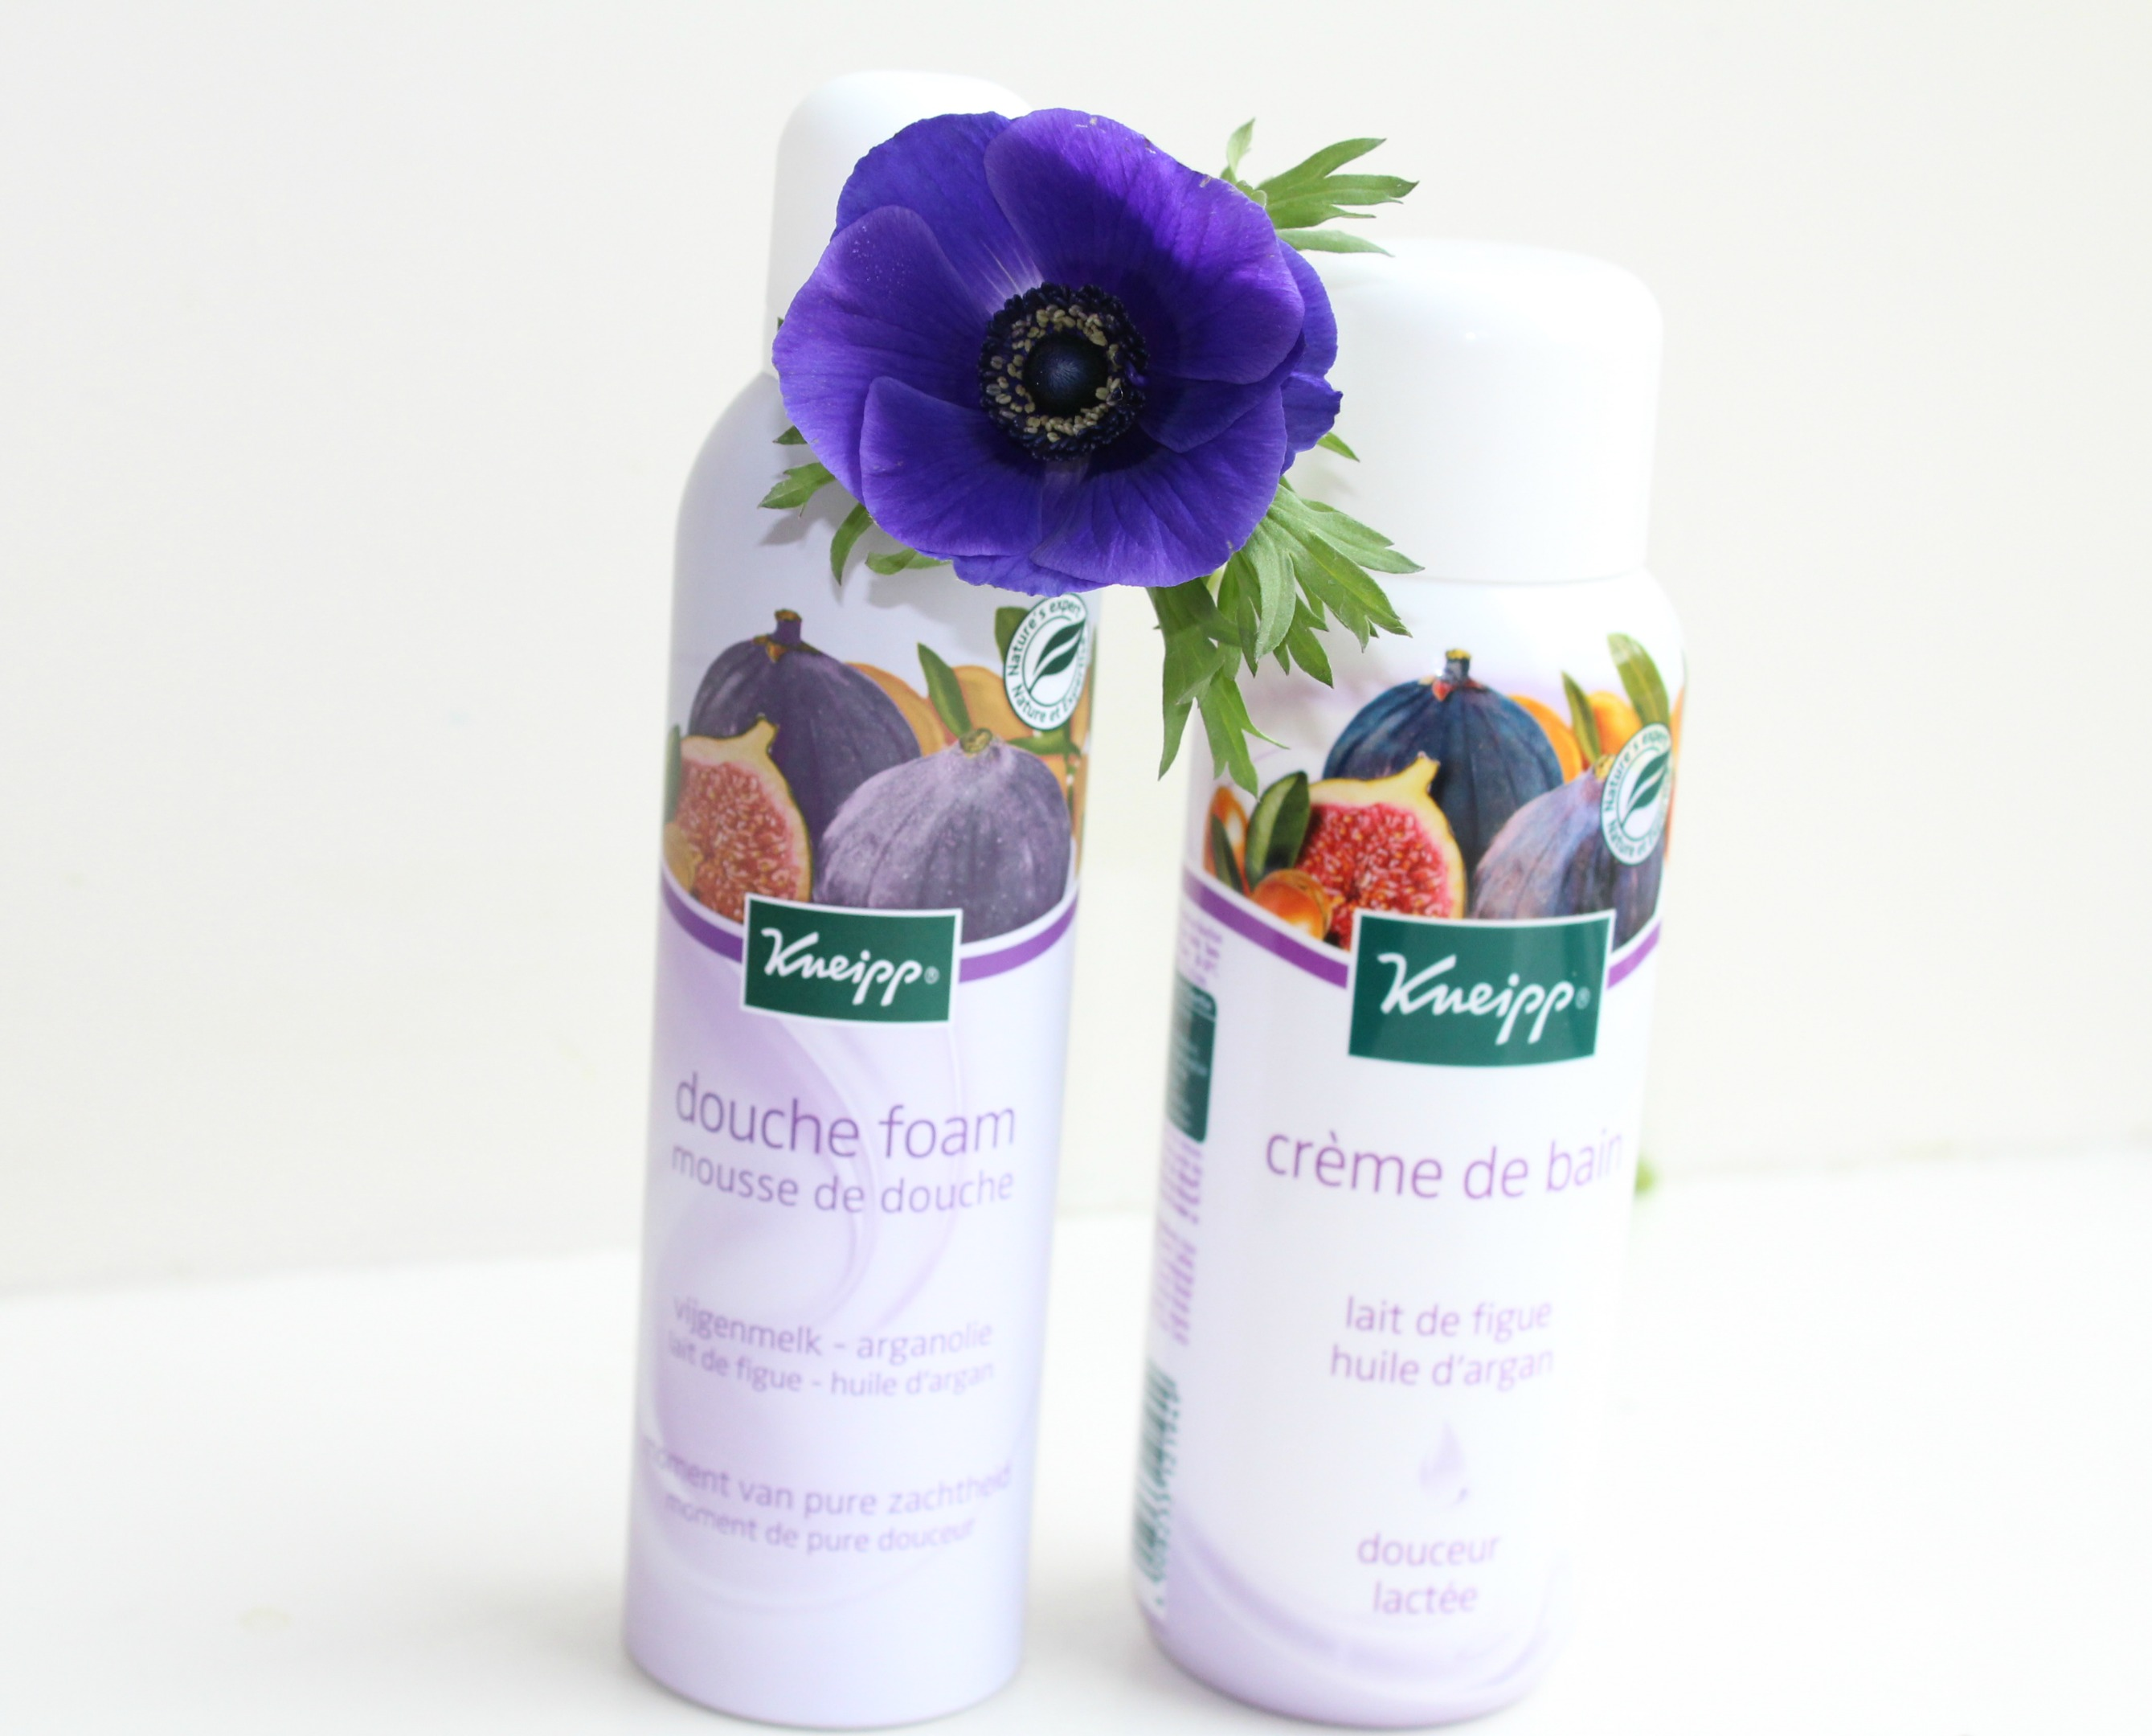 Kneipp Vijgenmelk - Arganolie douche foam-creme bad-GoodGirlsCompany-ervaringen-review